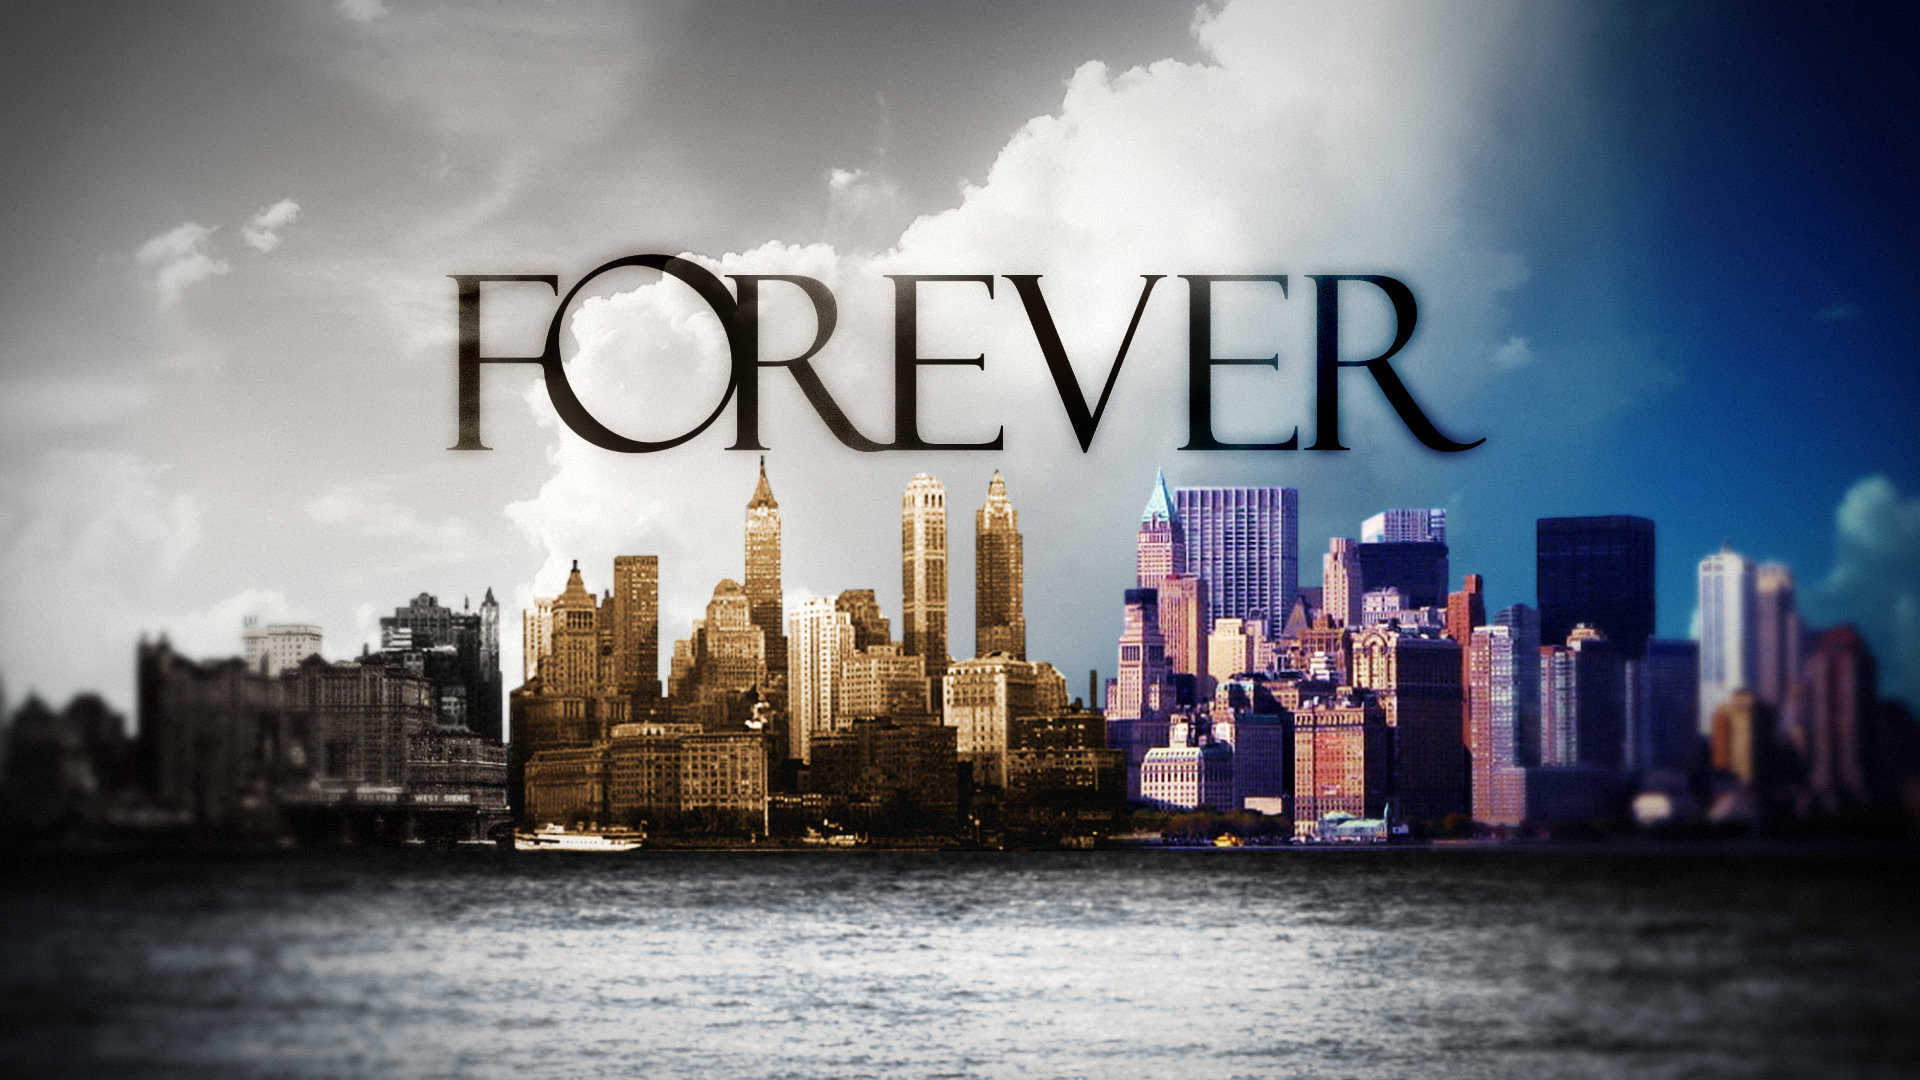 Wallpaper Forever Tv Series Wallpapers HD Upload at November 1 2014 1920x1080